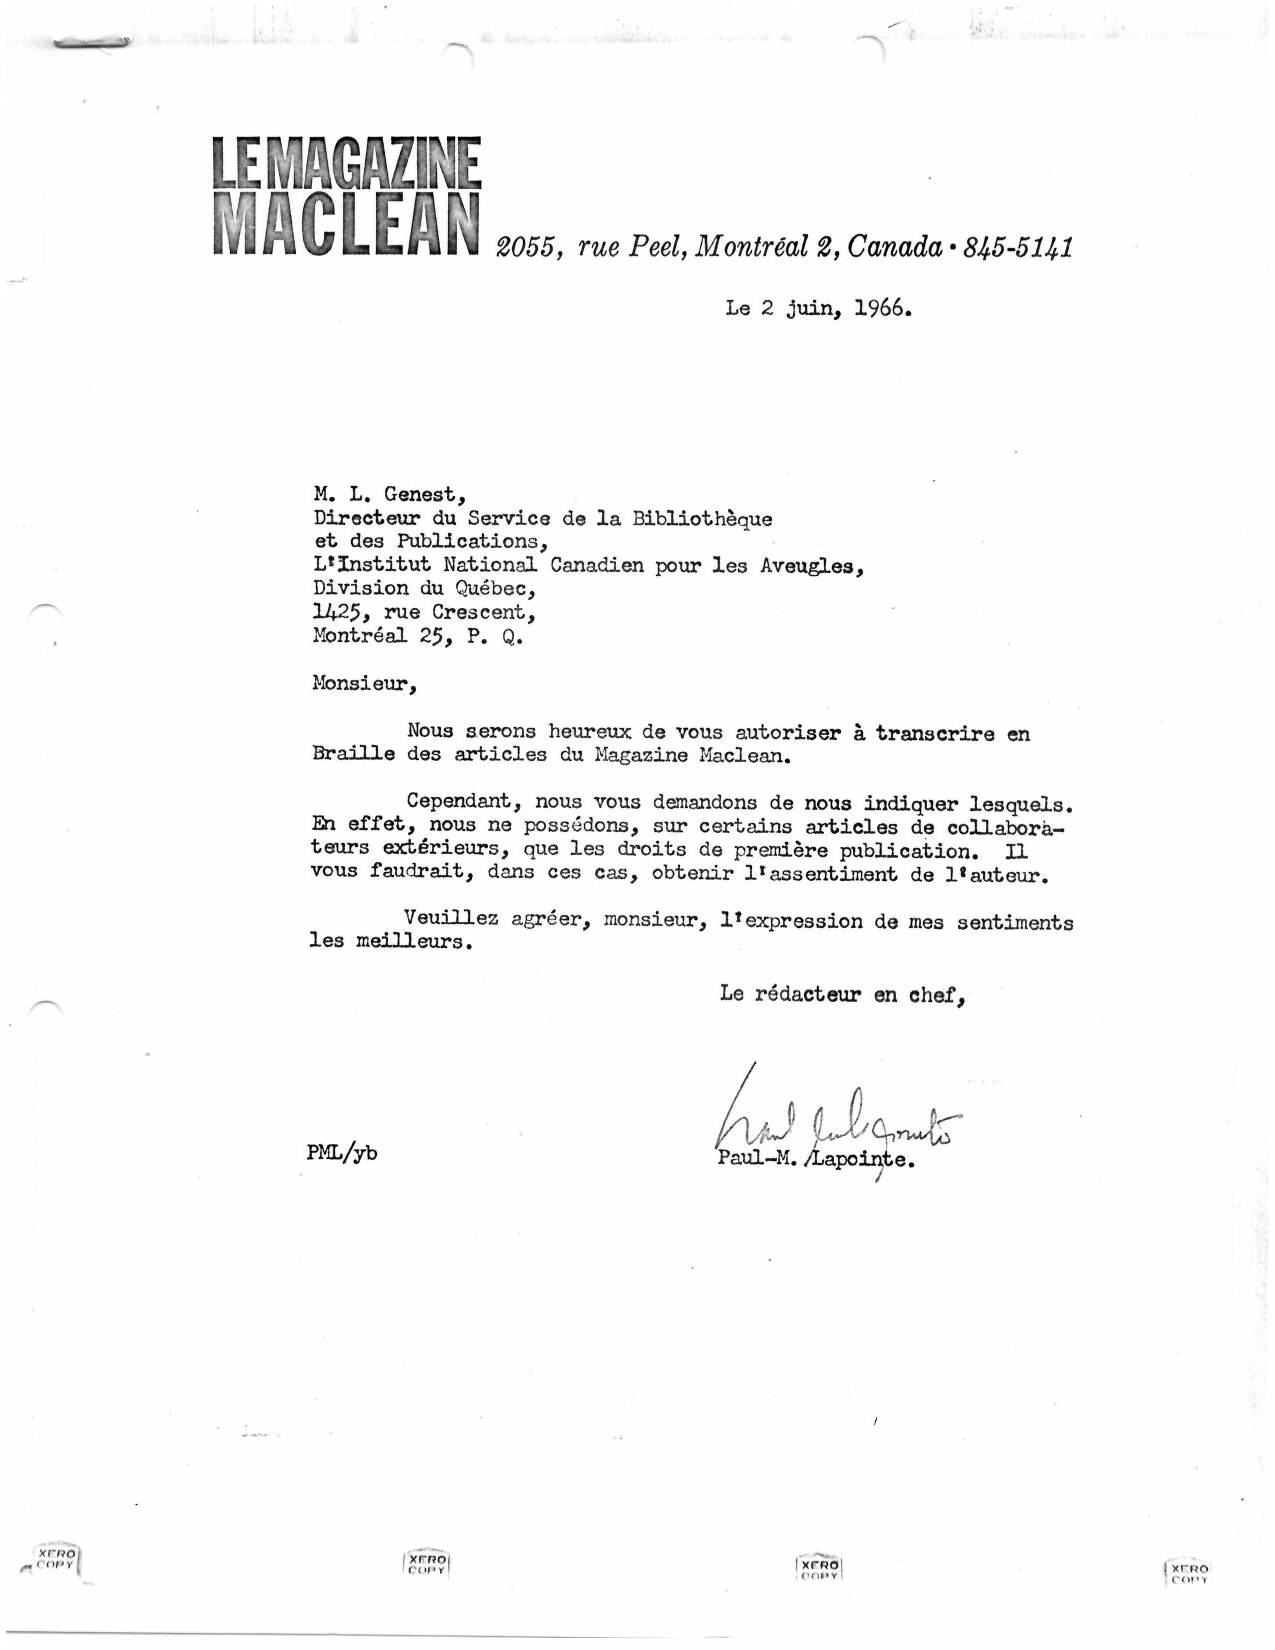 MacLean agreement archive, from 1966